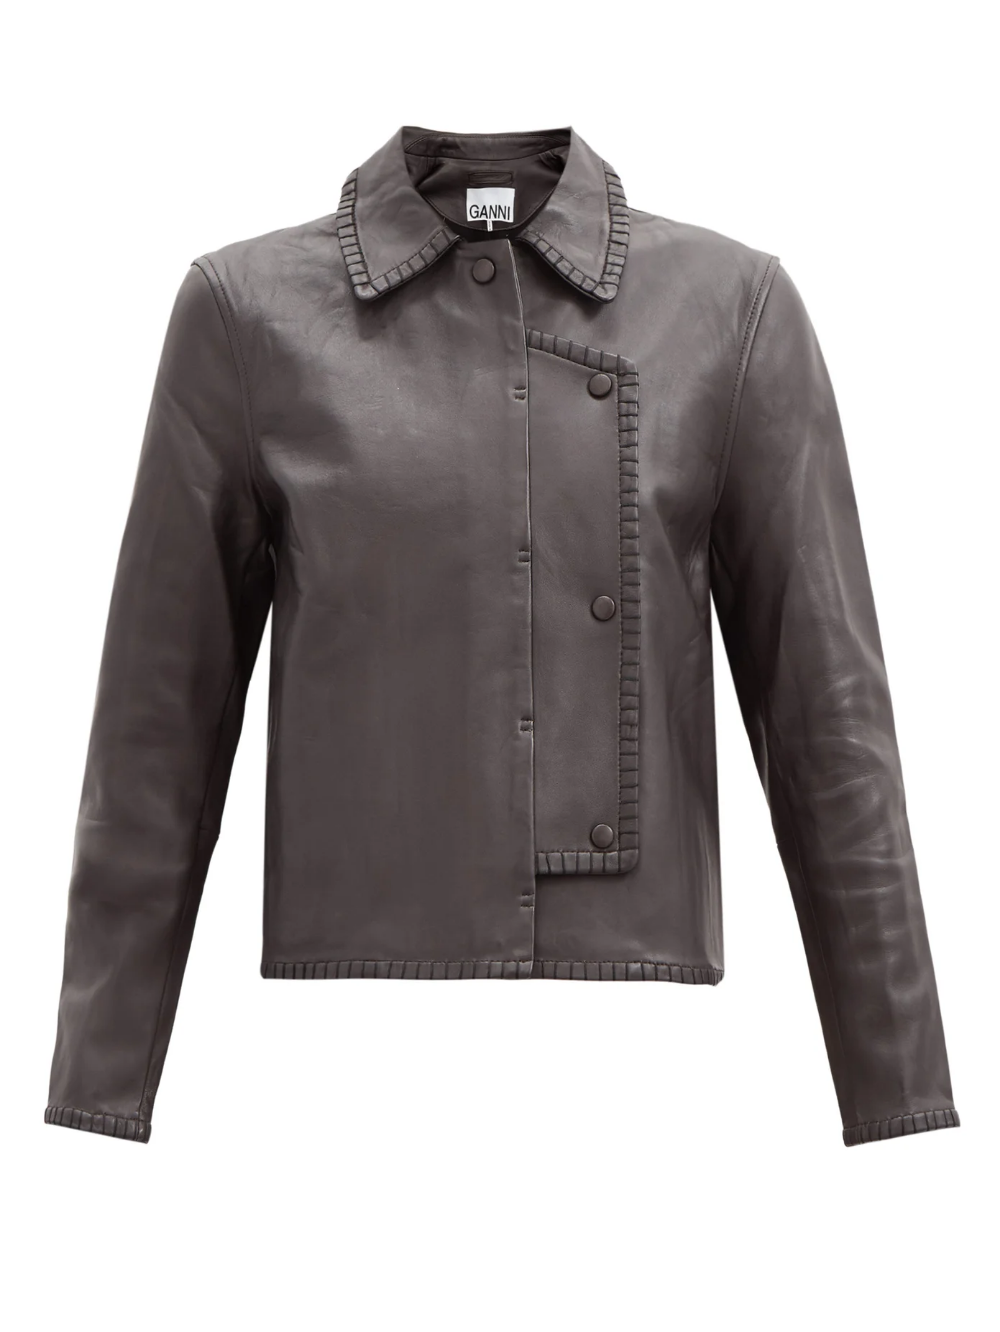 Double Breasted Whipstitched Leather Jacket Ganni Matchesfashion Us Leather Jacket Leather Jackets Women Double Breasted [ 1332 x 1000 Pixel ]